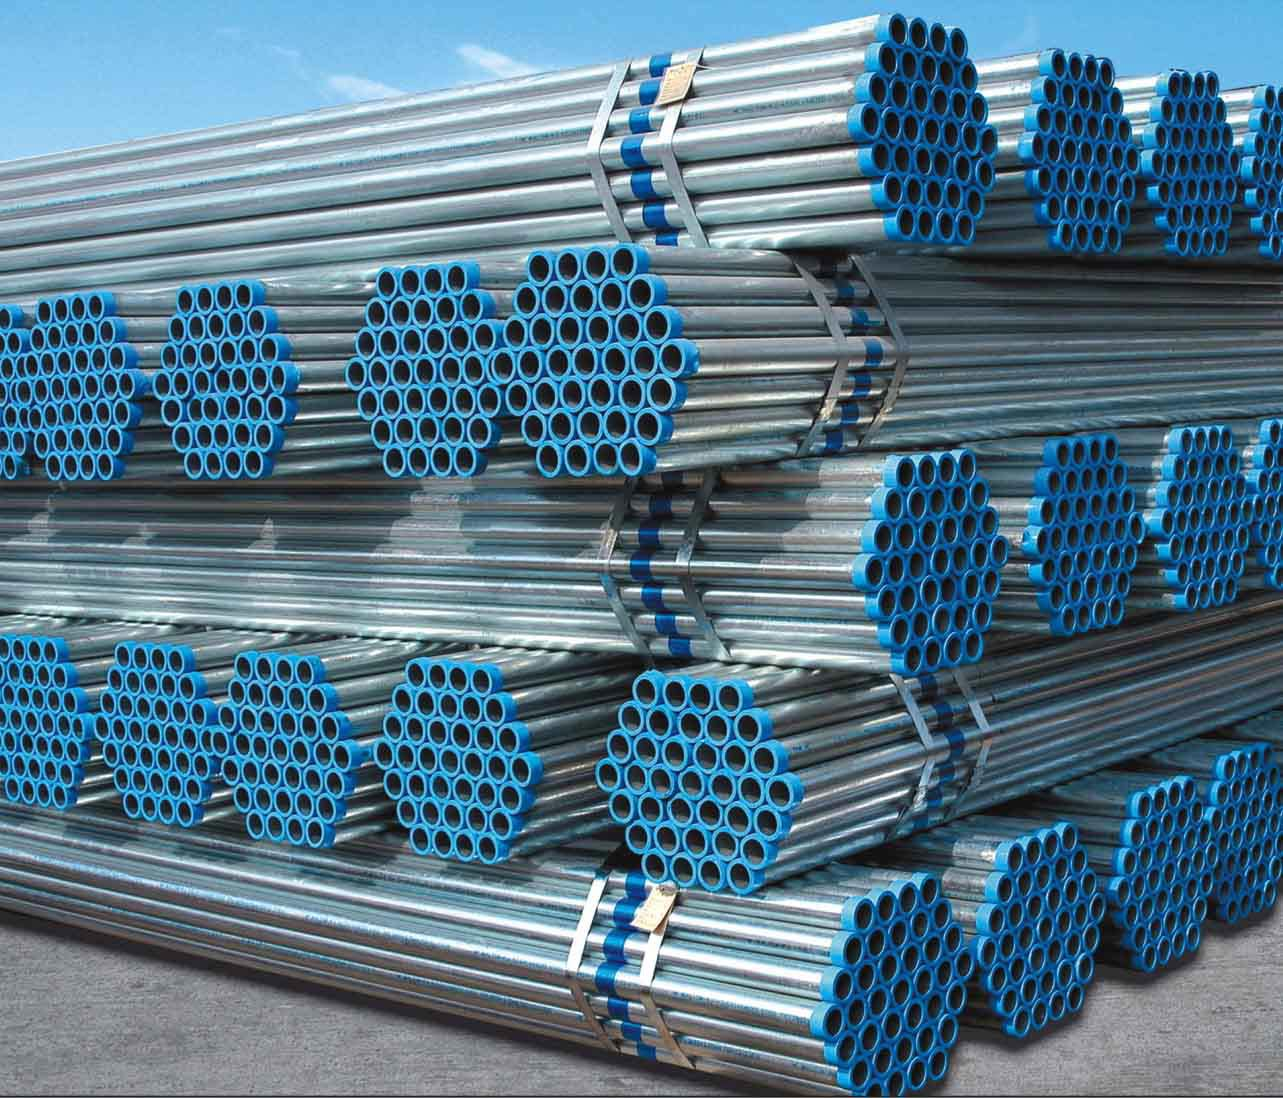 Stainless Steel Stockists UAE-Pipes & Tubes-Stainless Steel Dubai